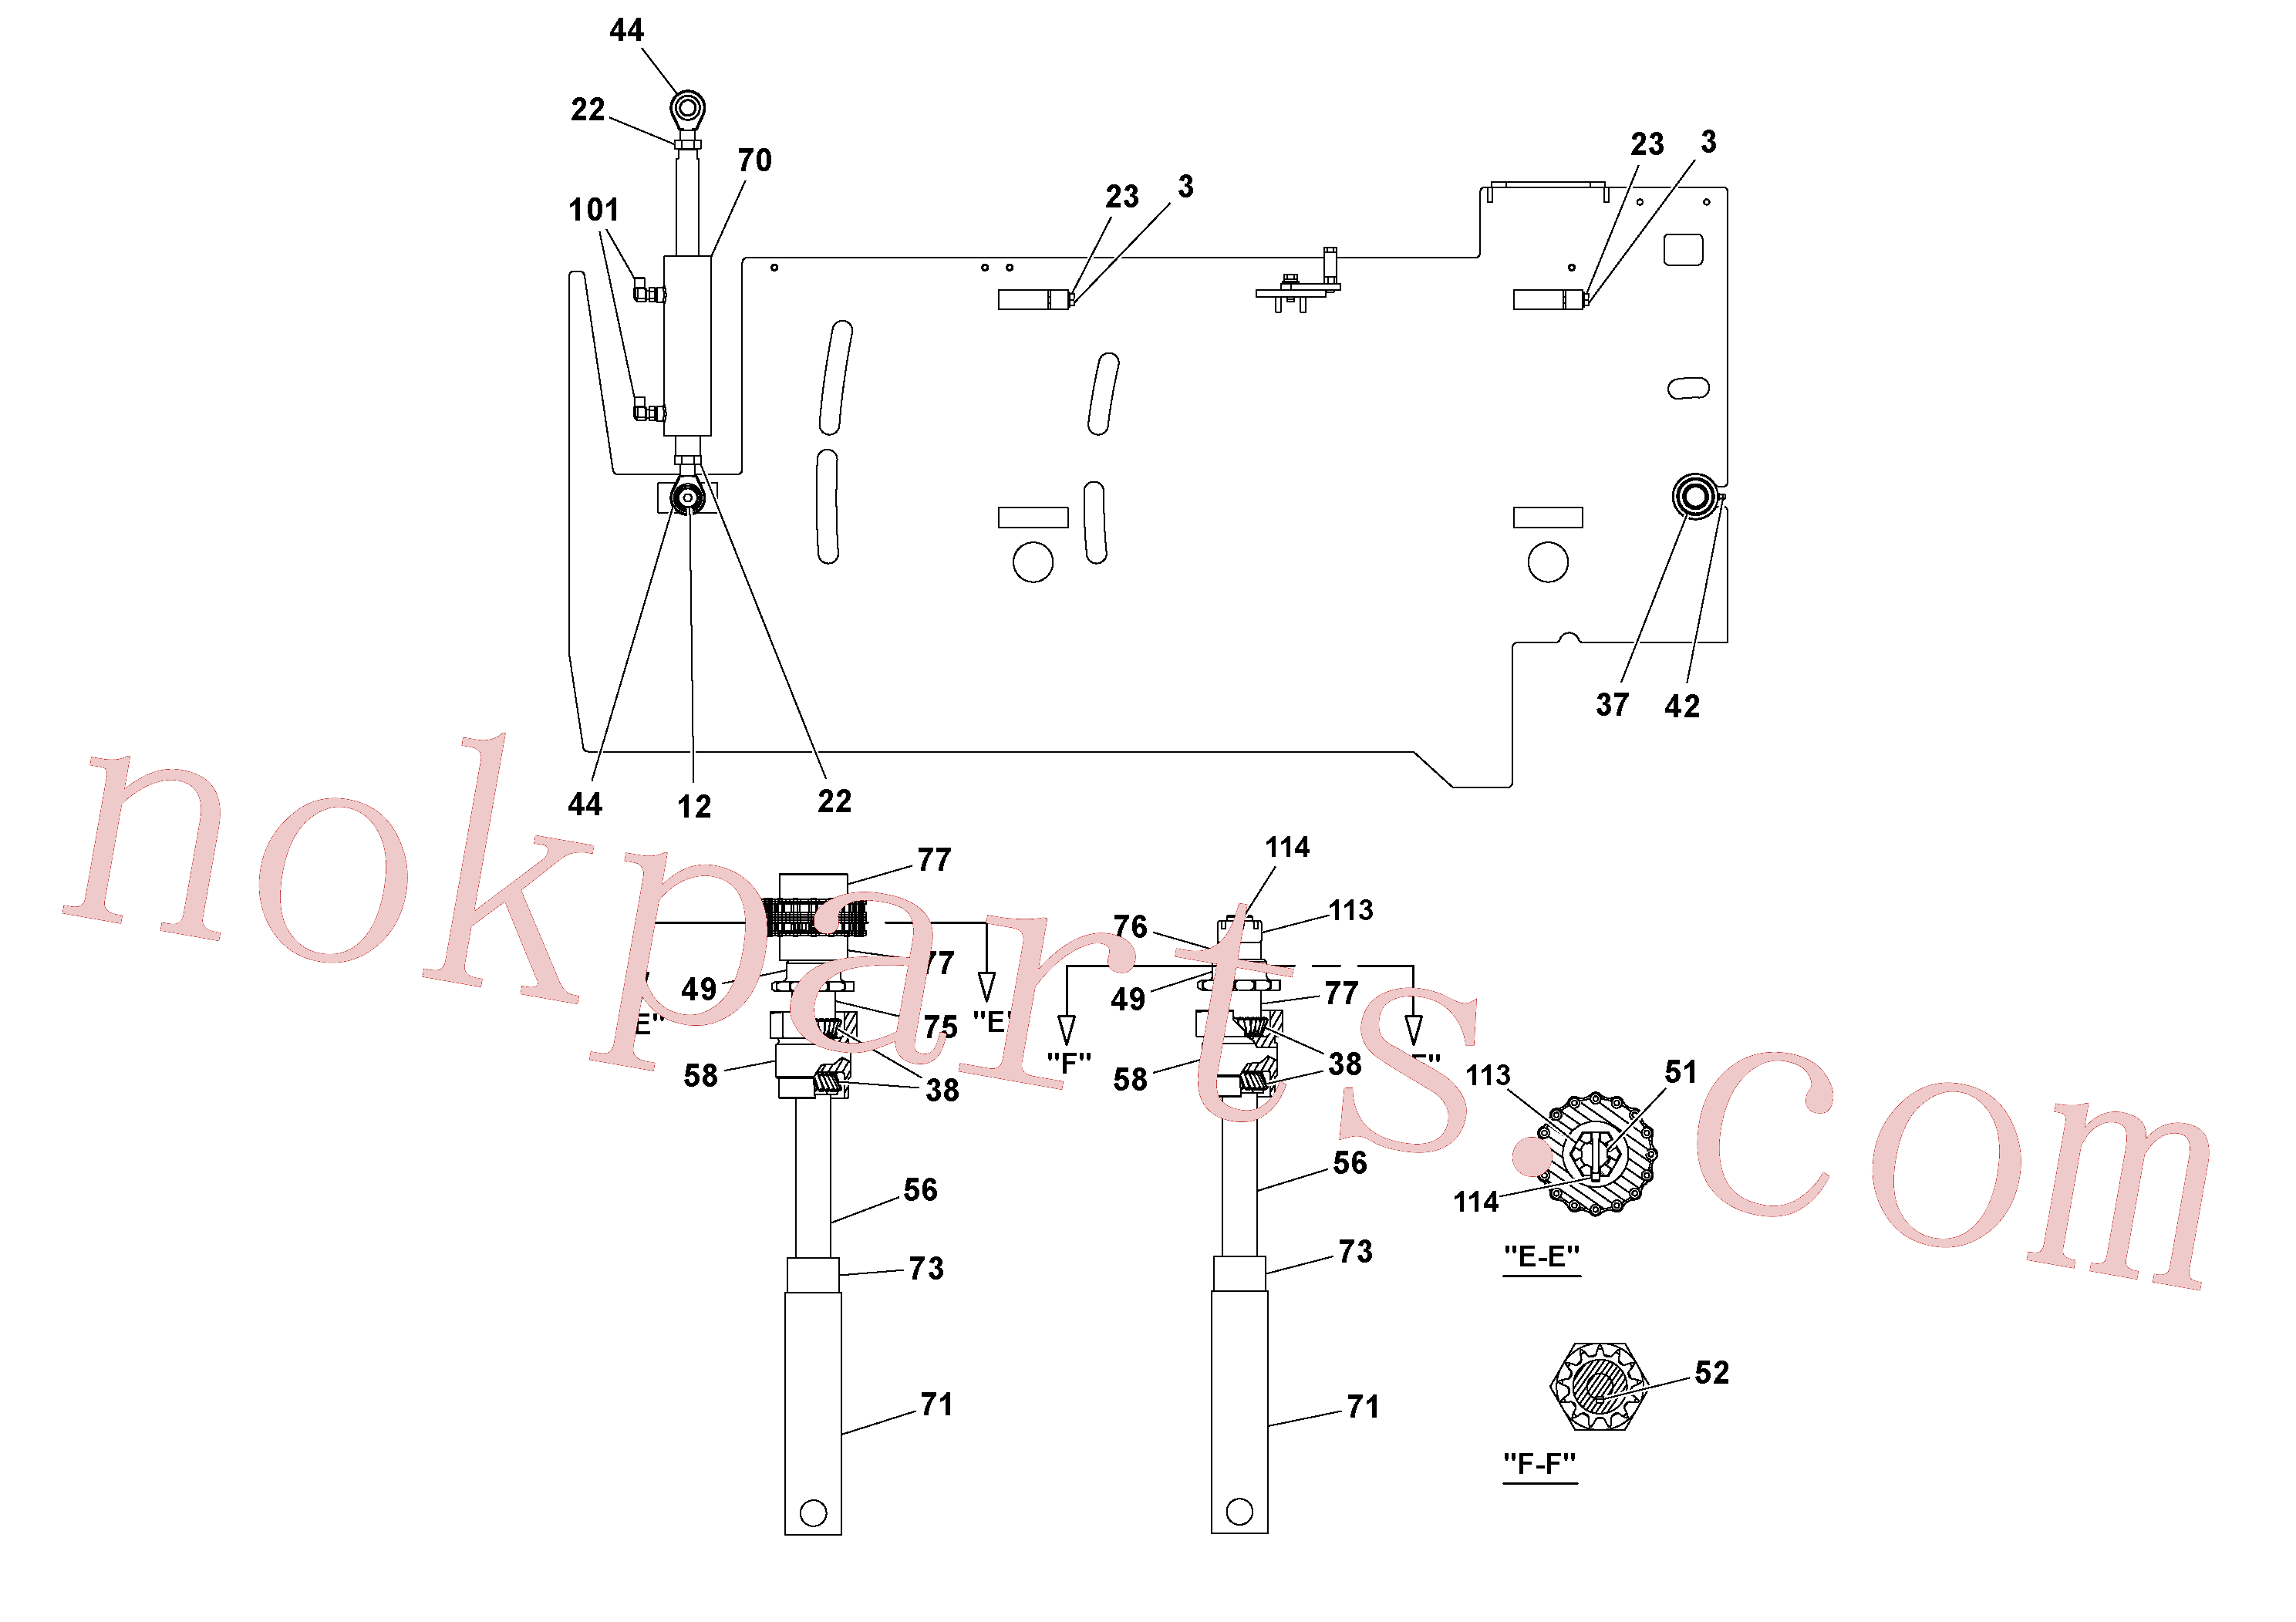 RM20313136 for Volvo 5' Extension Assembly(1037014 assembly)